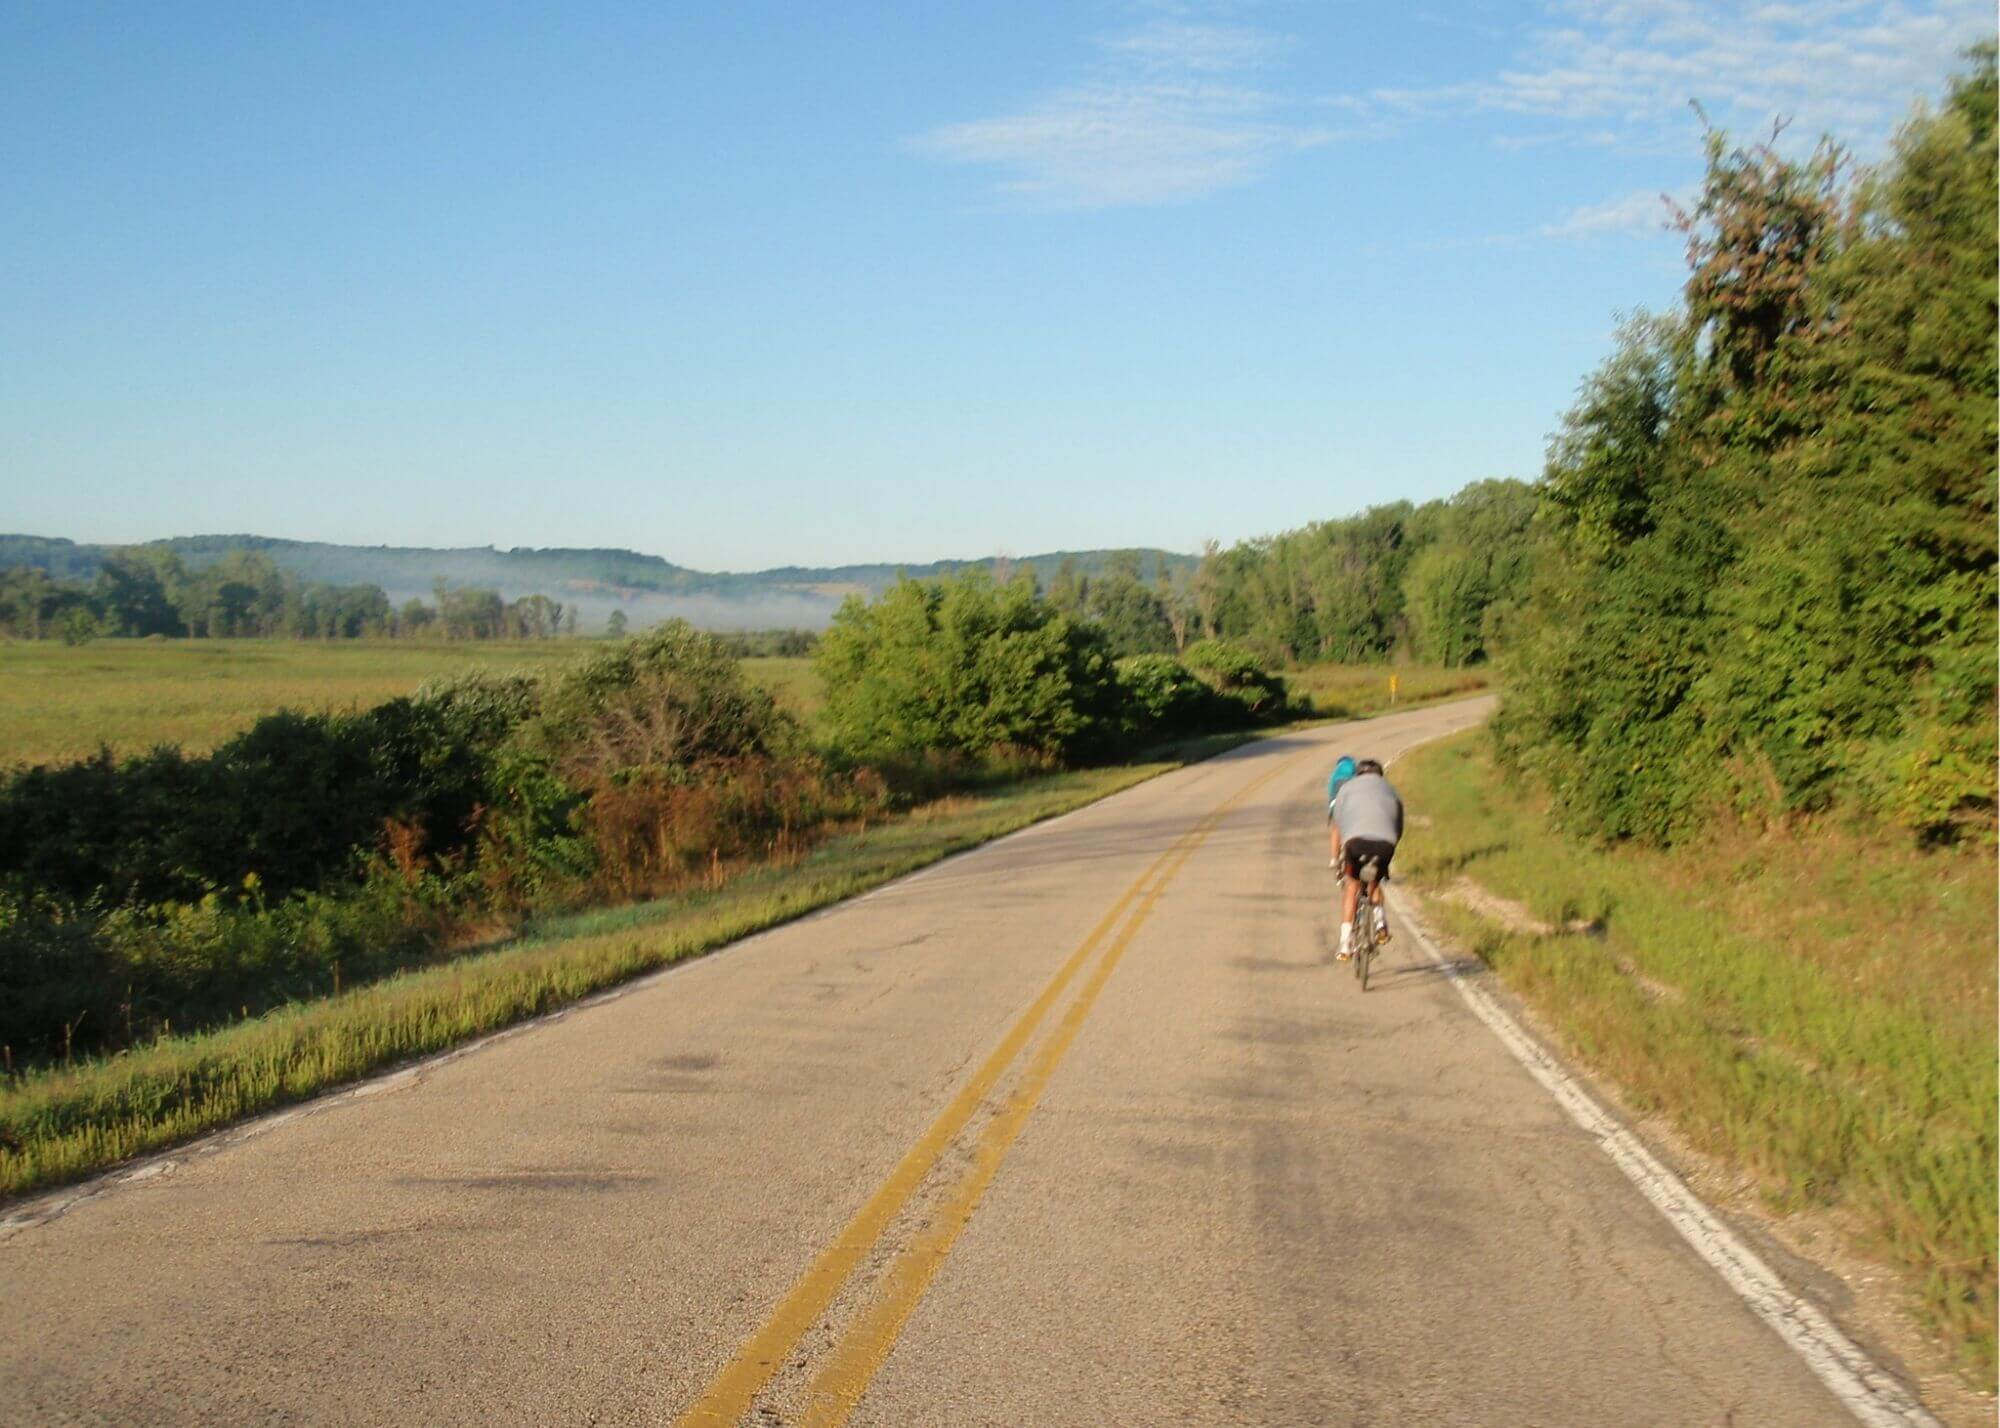 Biking along the road in Dane County, where a bike/pedestrian trail will be expanded thanks to Knowles-Nelson.